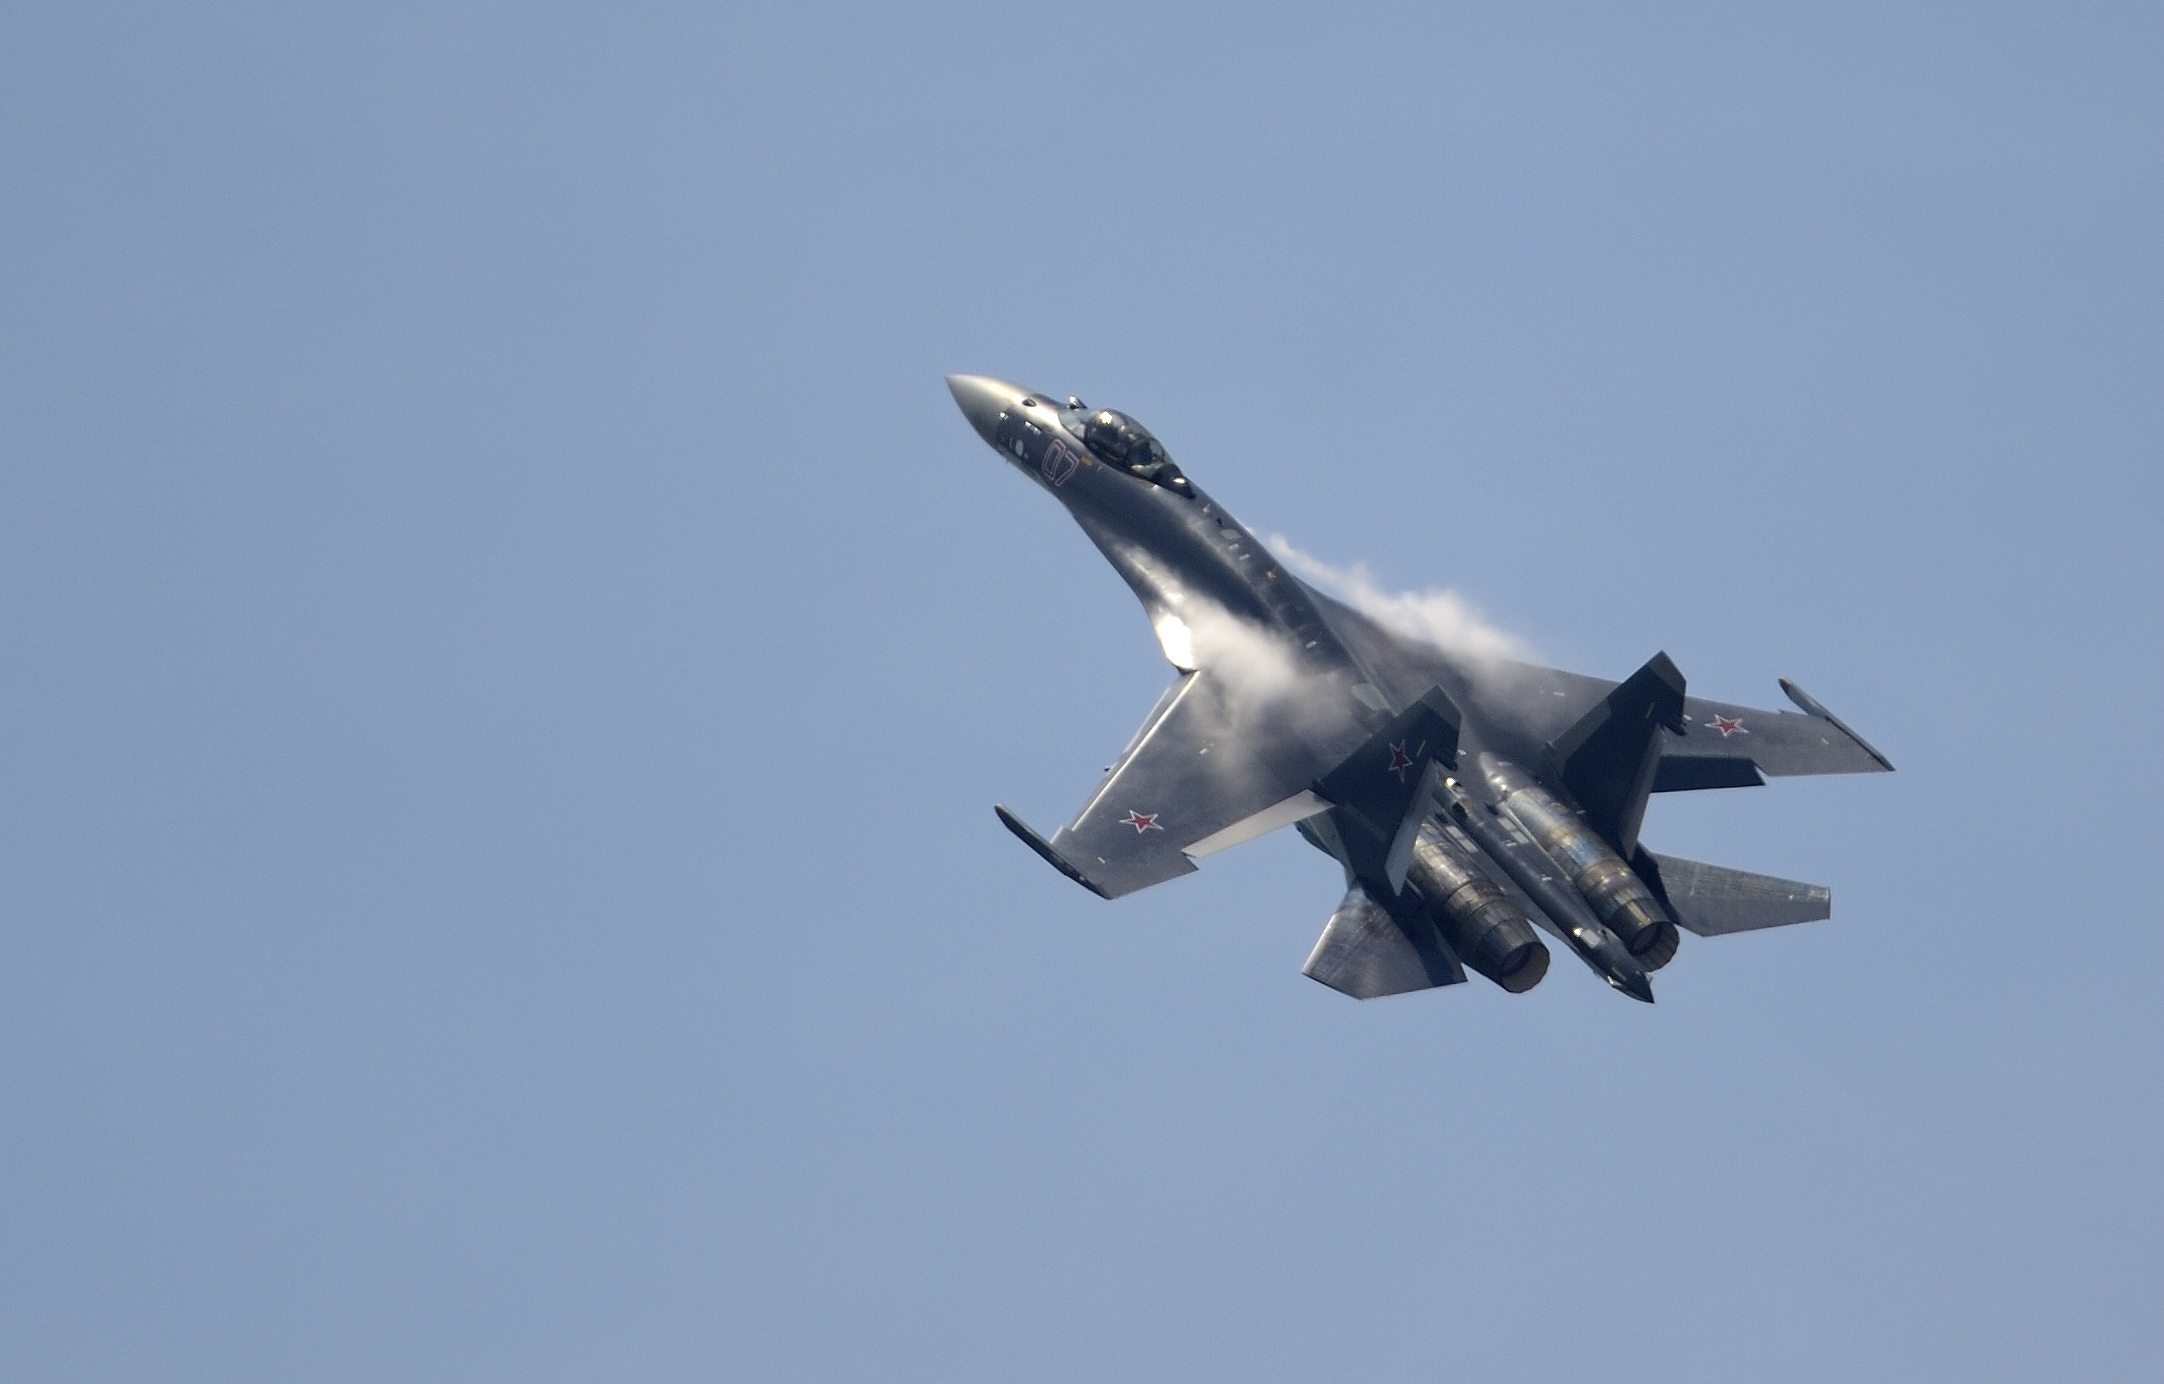 US military again accuses Russian jets of 'unsafe' aerial encounter